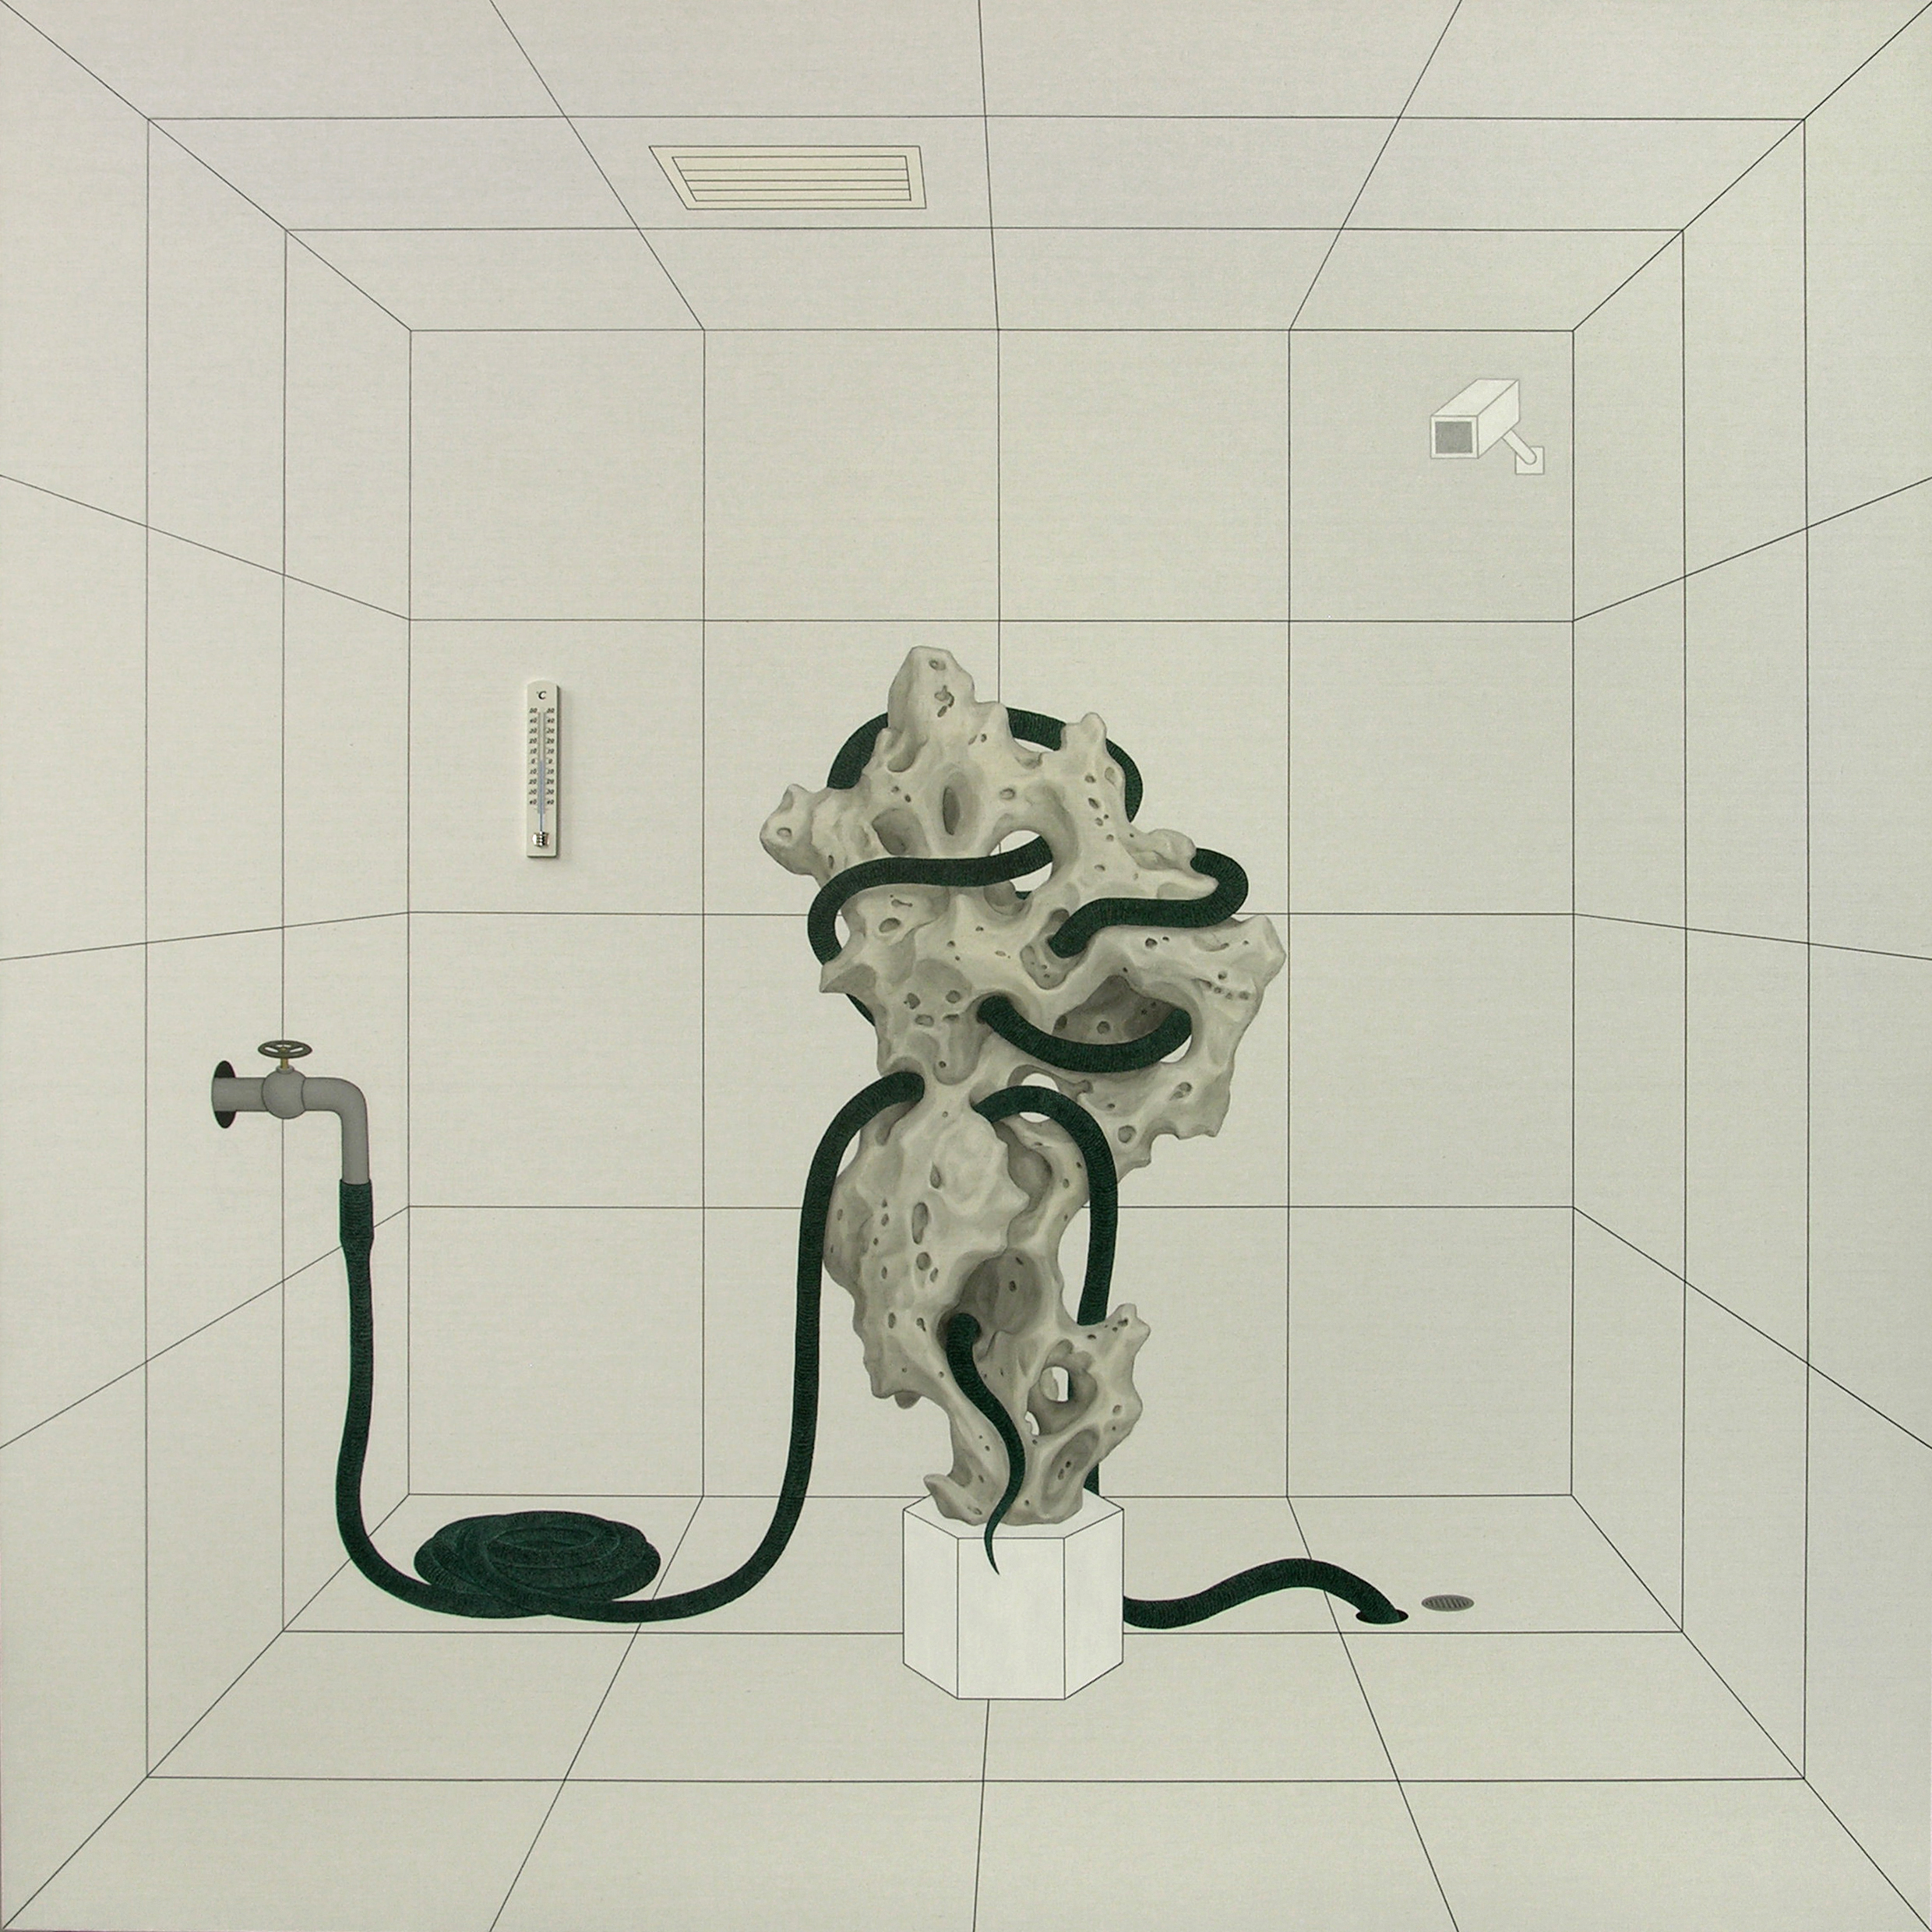 Gao Lei 高磊, A302, 2009, Oil and mixed media on canvas 布面油彩、综合材料, 200 x 200 cm